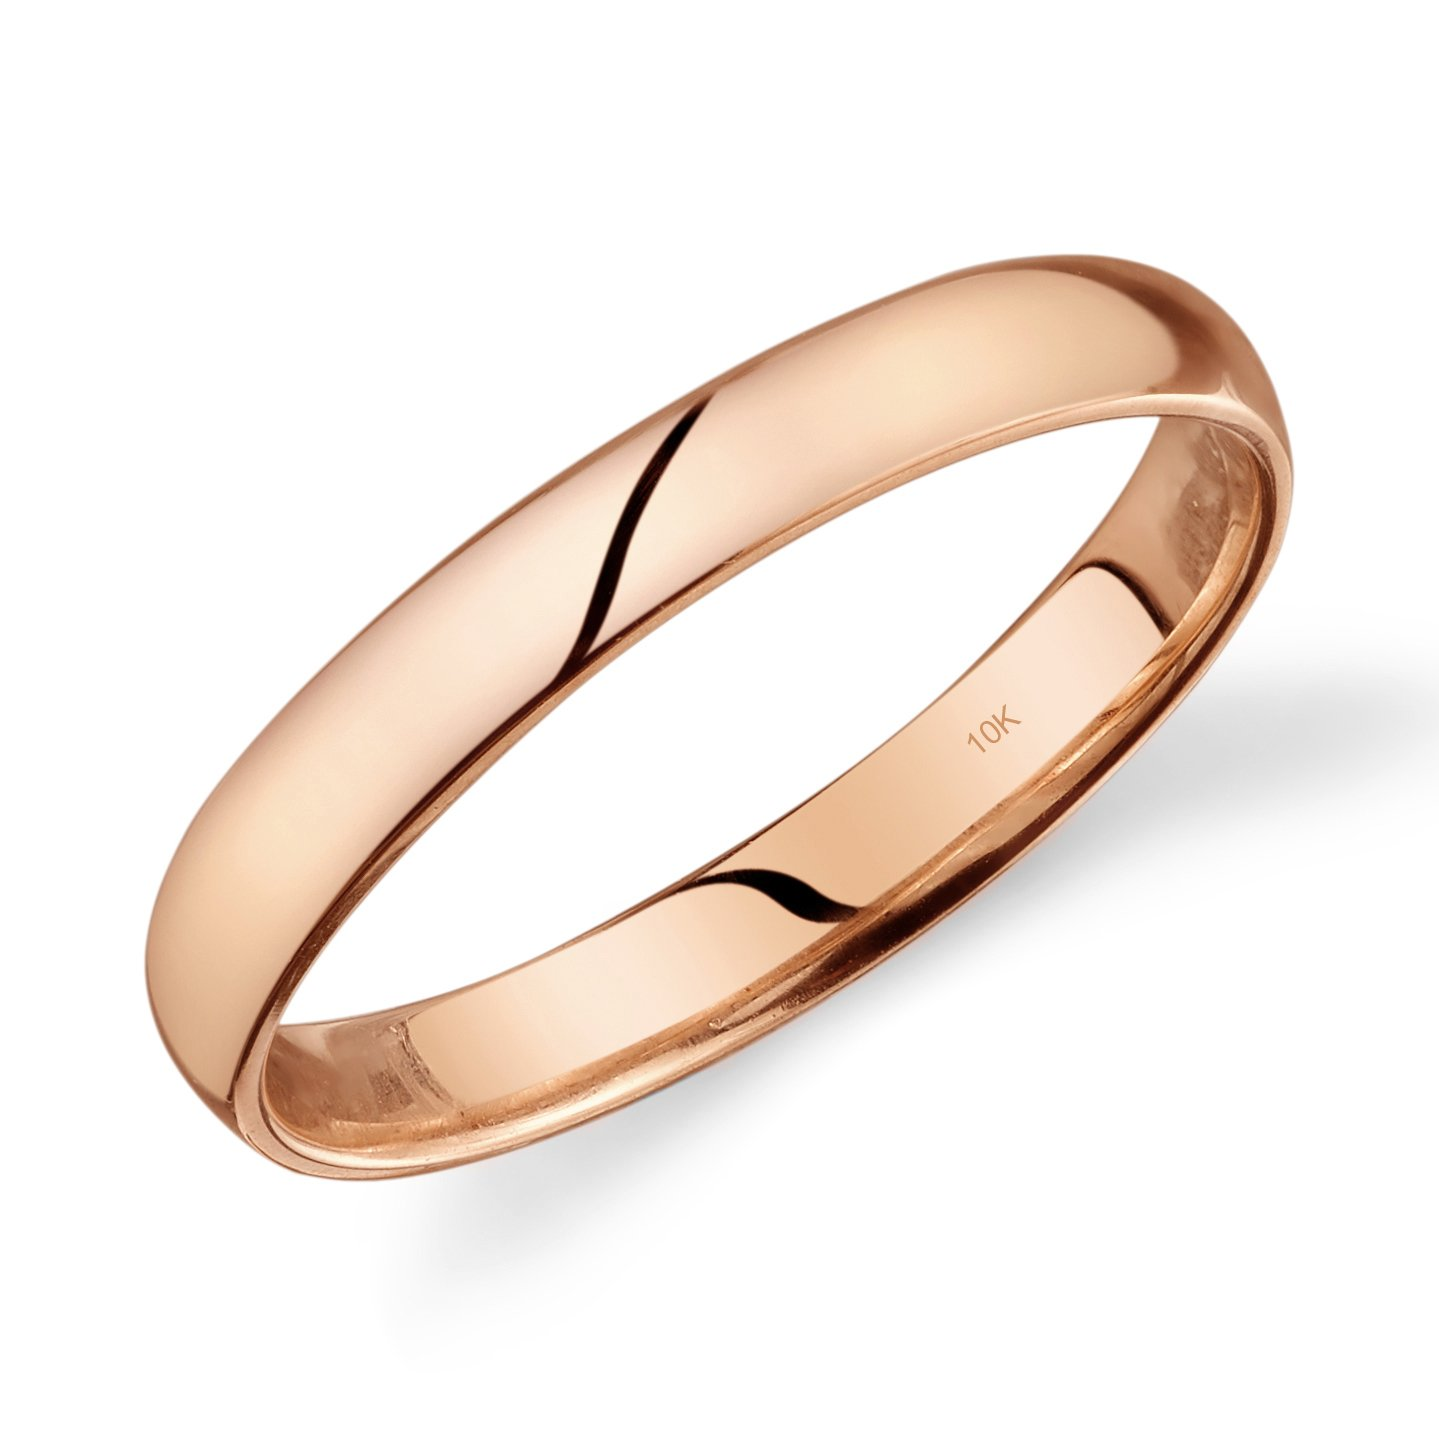 Tesori & Co 10k Yellow or White or Rose Gold Light Comfort Fit 3mm Wedding Band